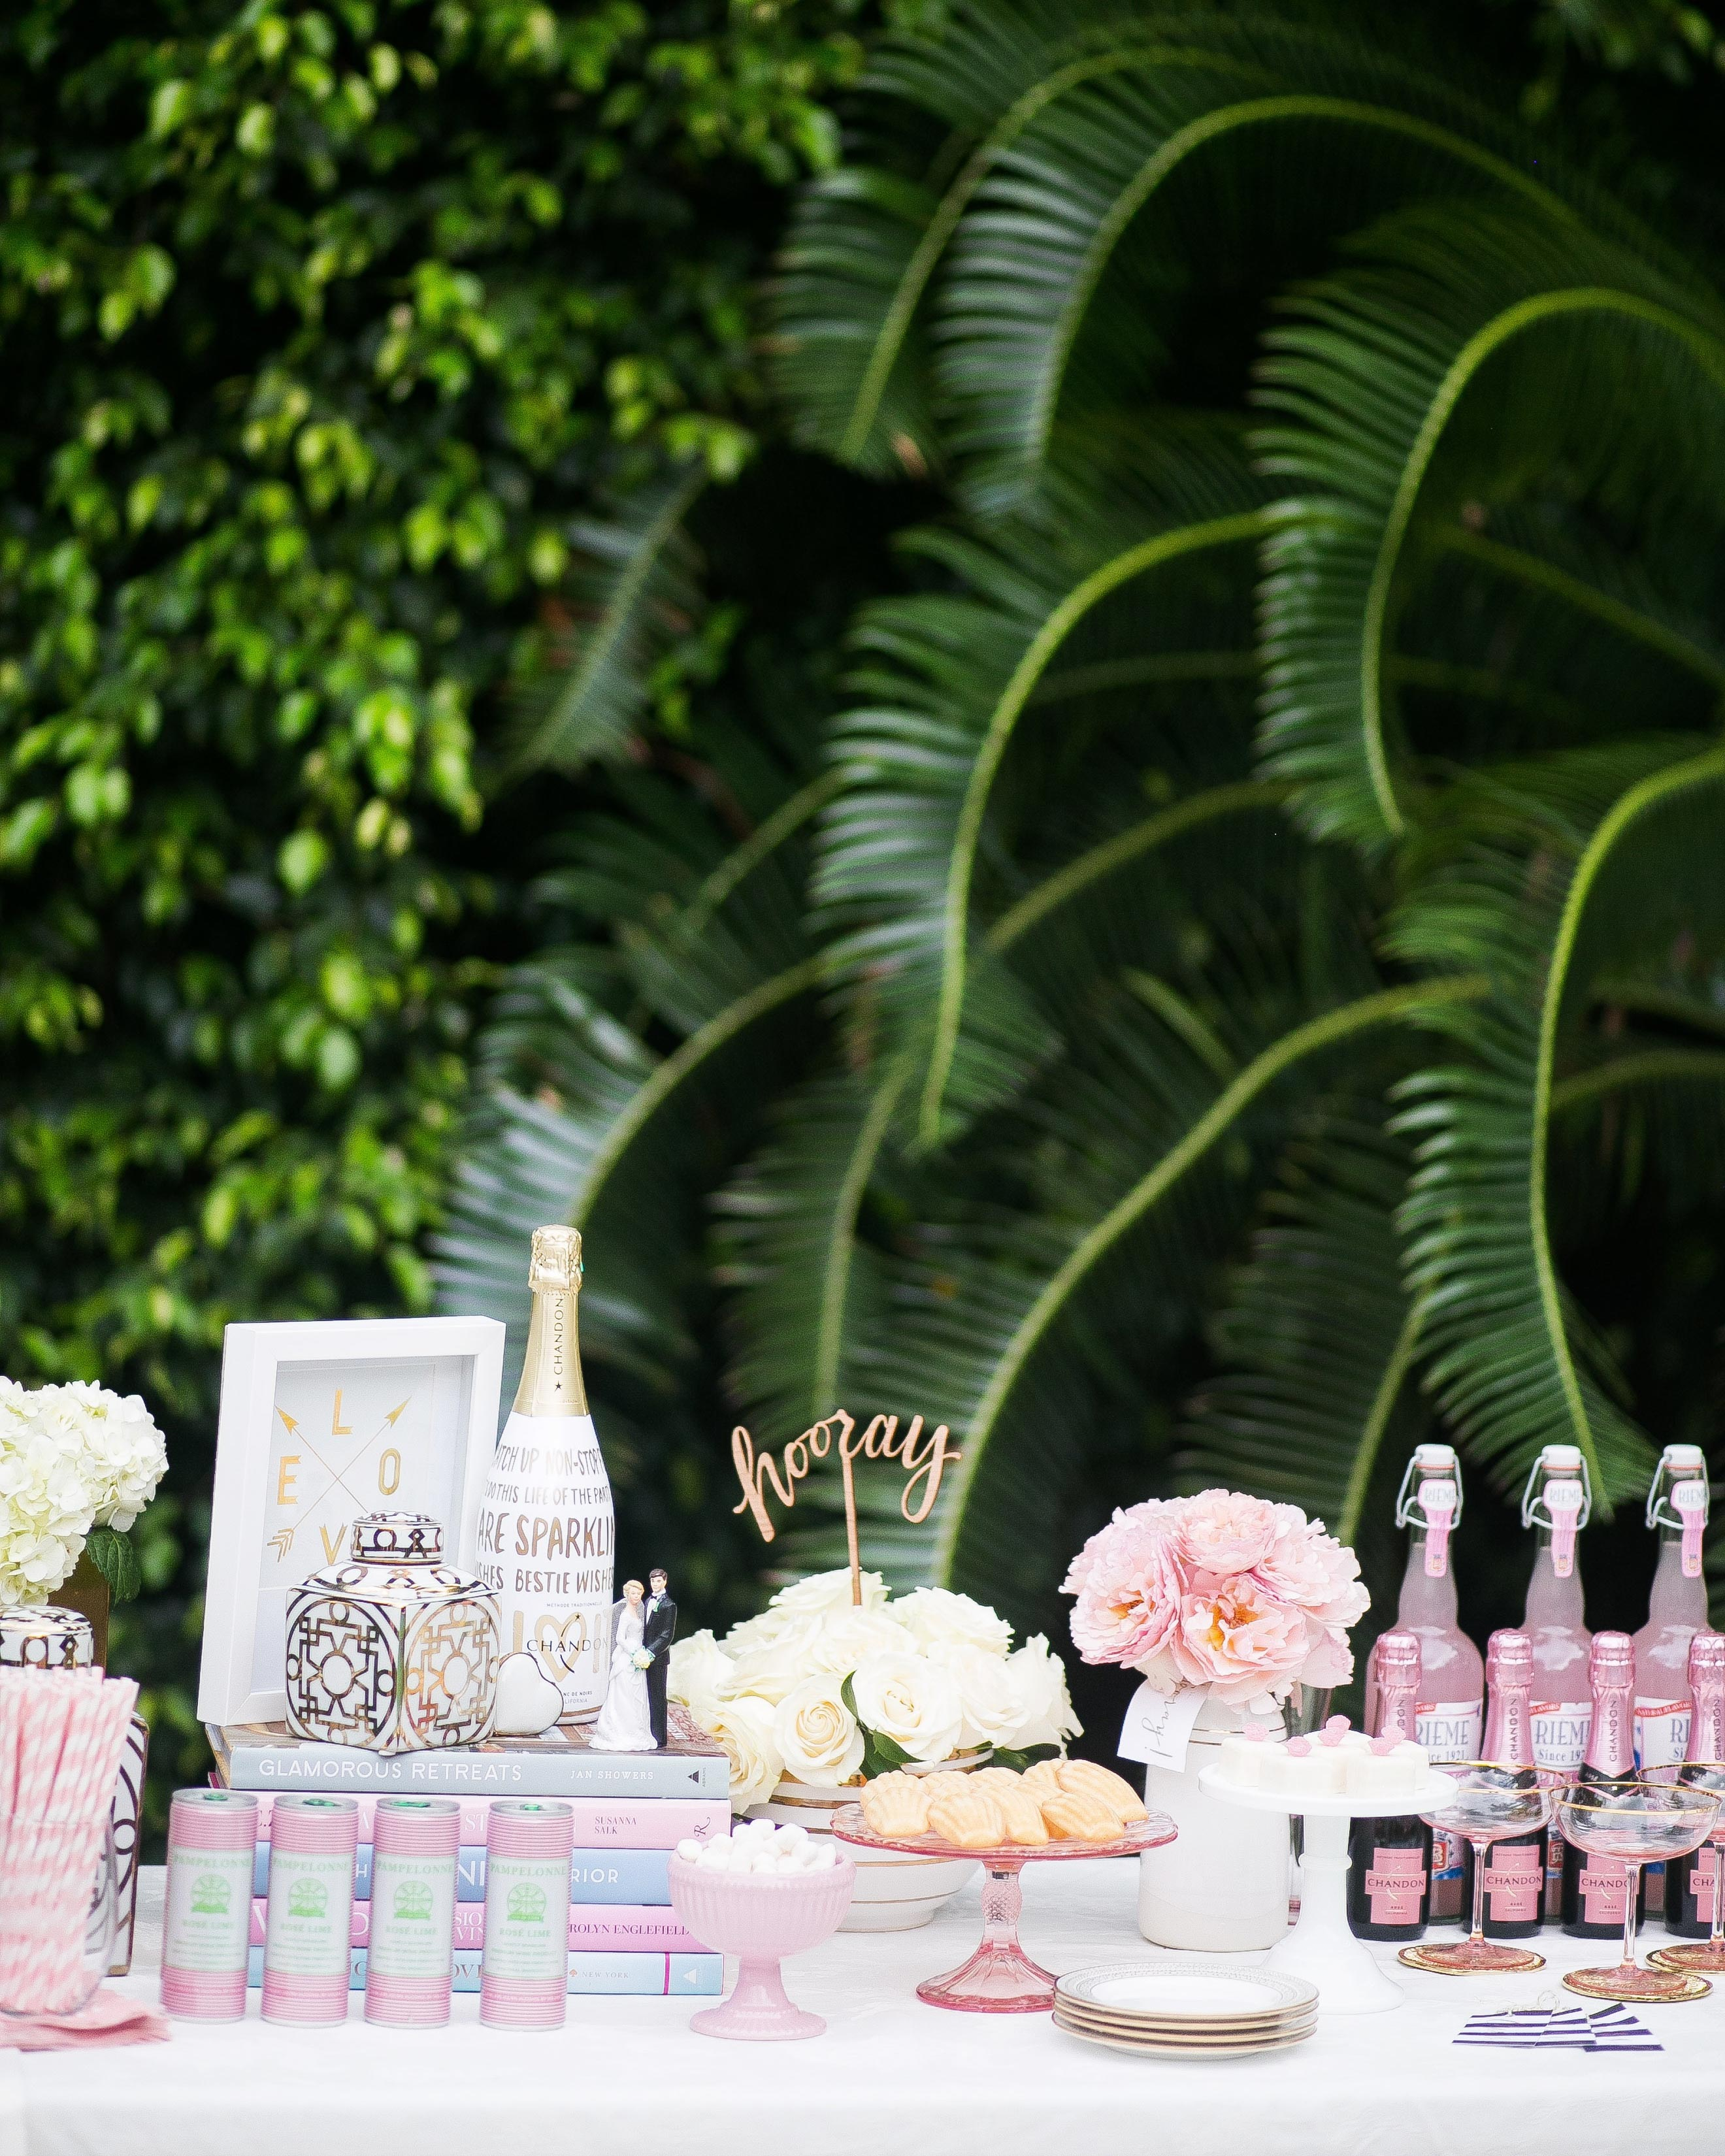 fashionable-hostess-bridal-shower-table-0716.jpg